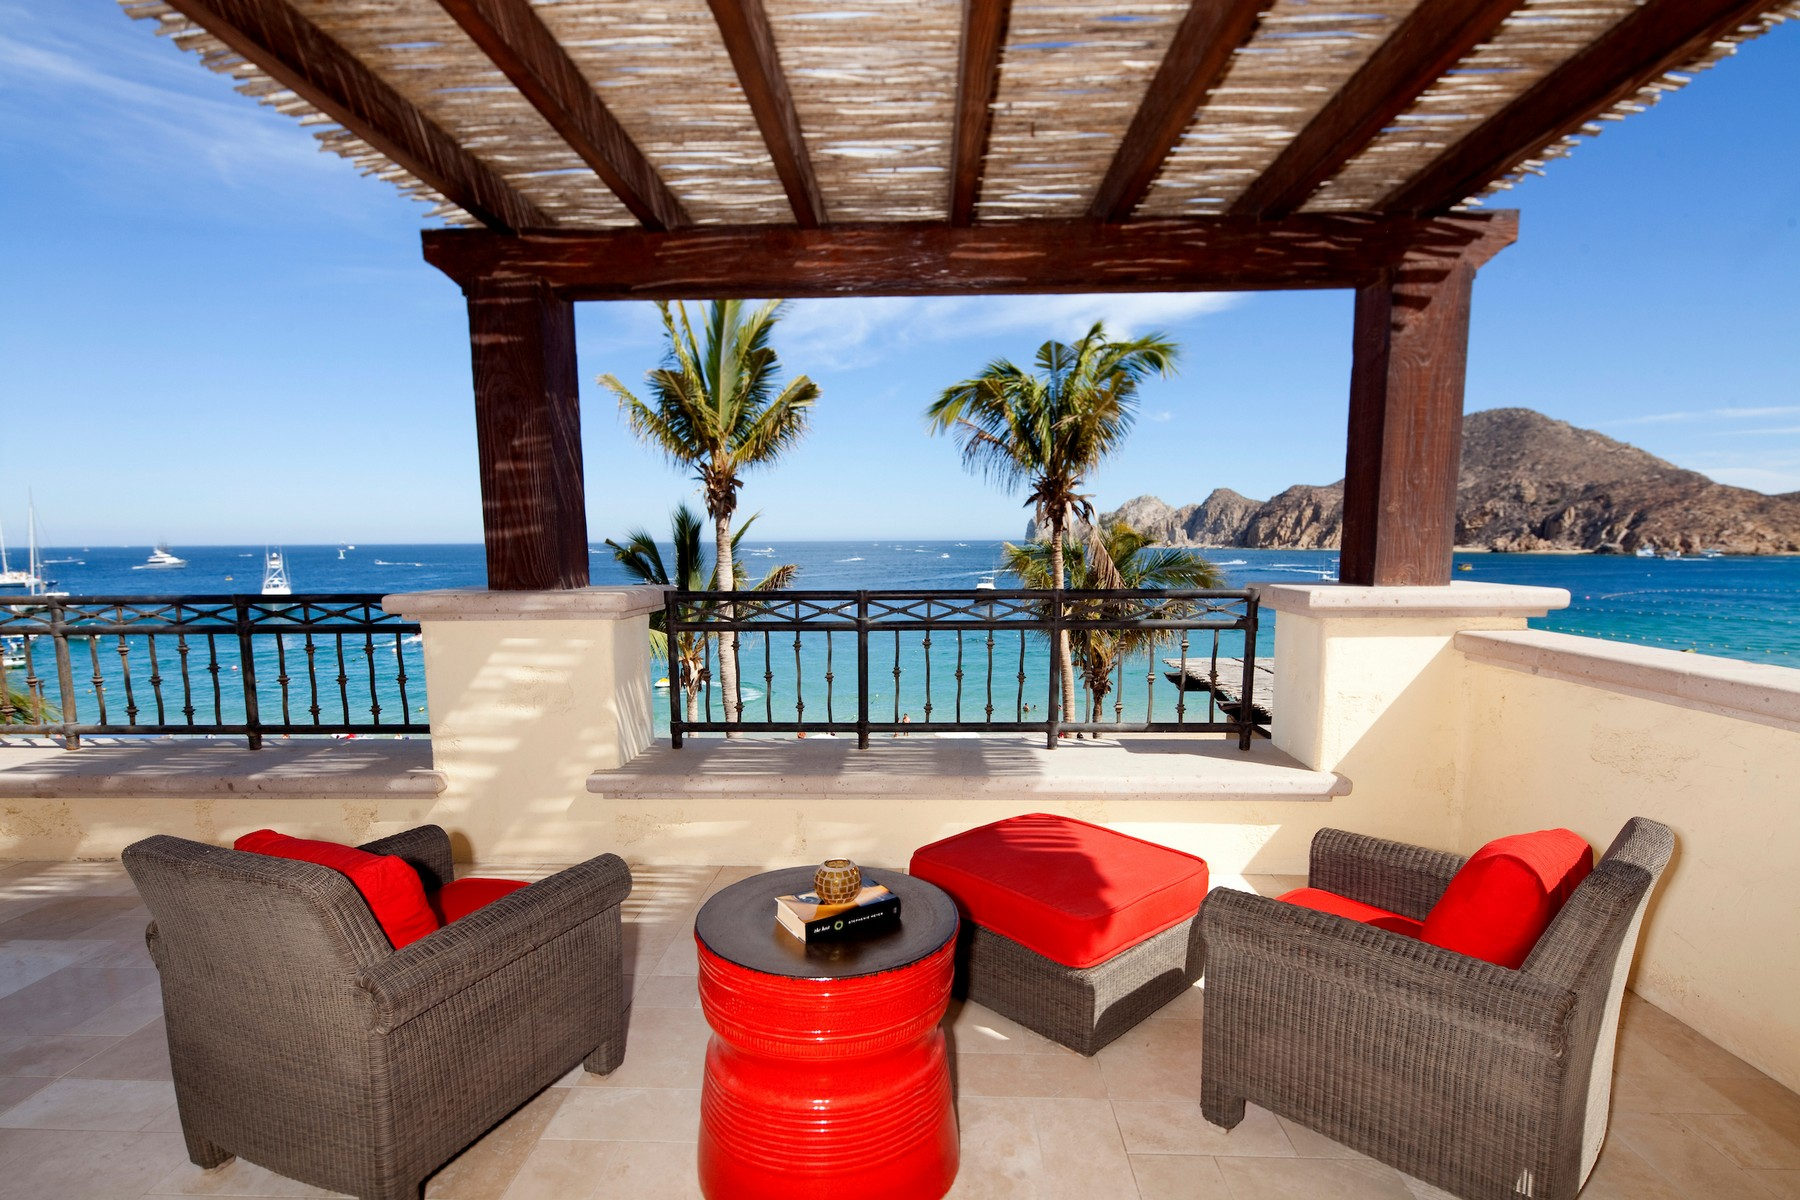 Additional photo for property listing at Villa Andrea Cabo San Lucas, Baja California Sur Mexico